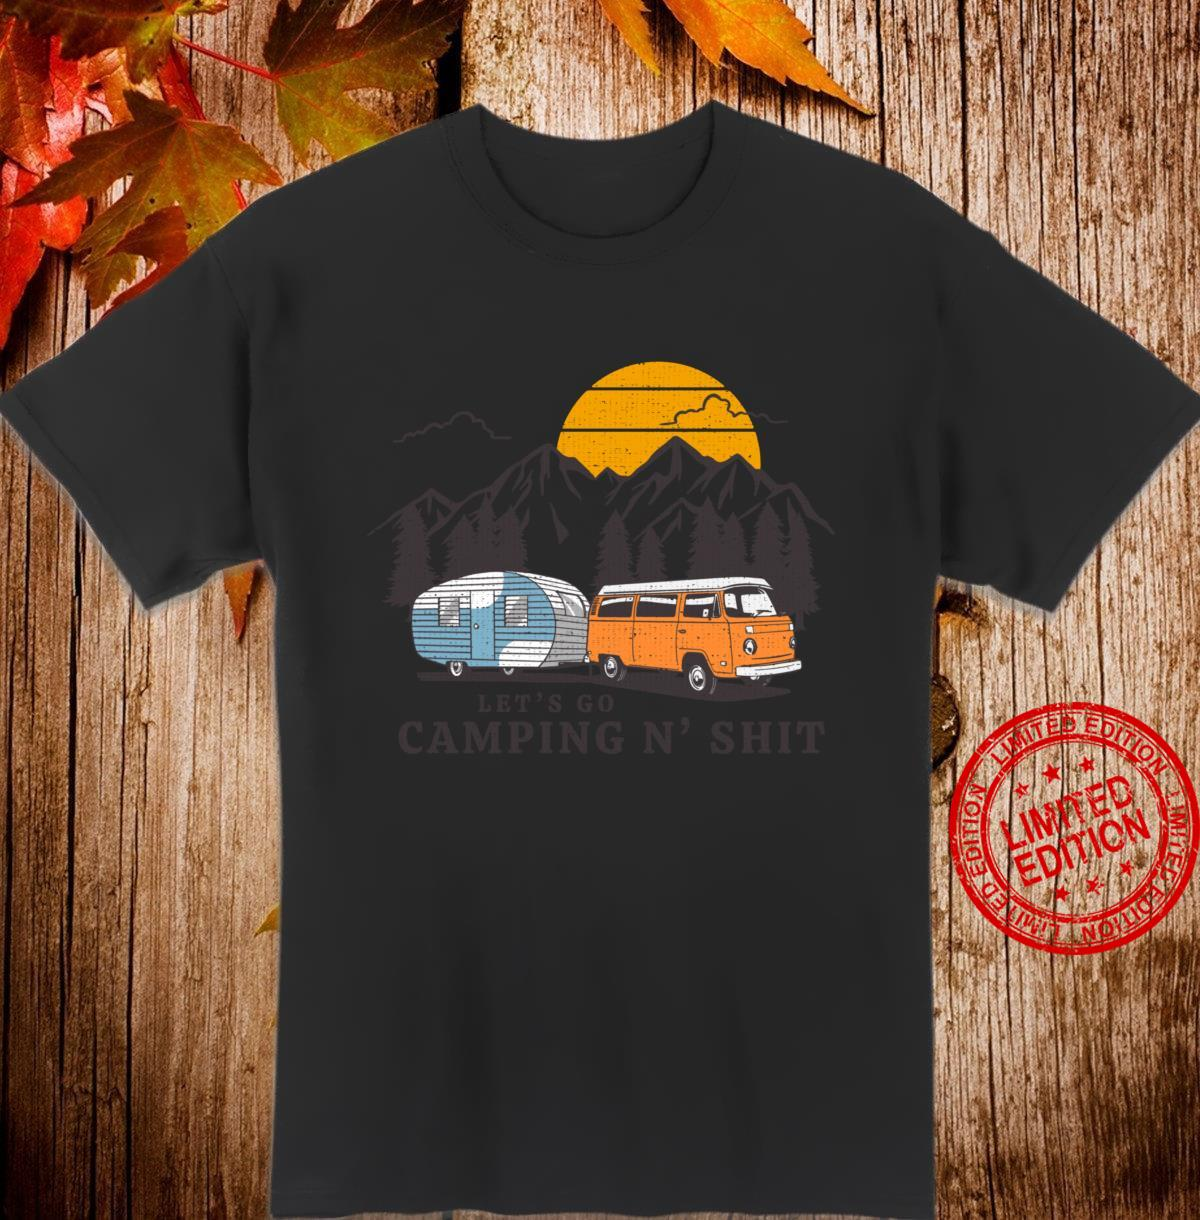 Funny Let's Go Camping N' Shit for Hiking Camper Van Life Shirt